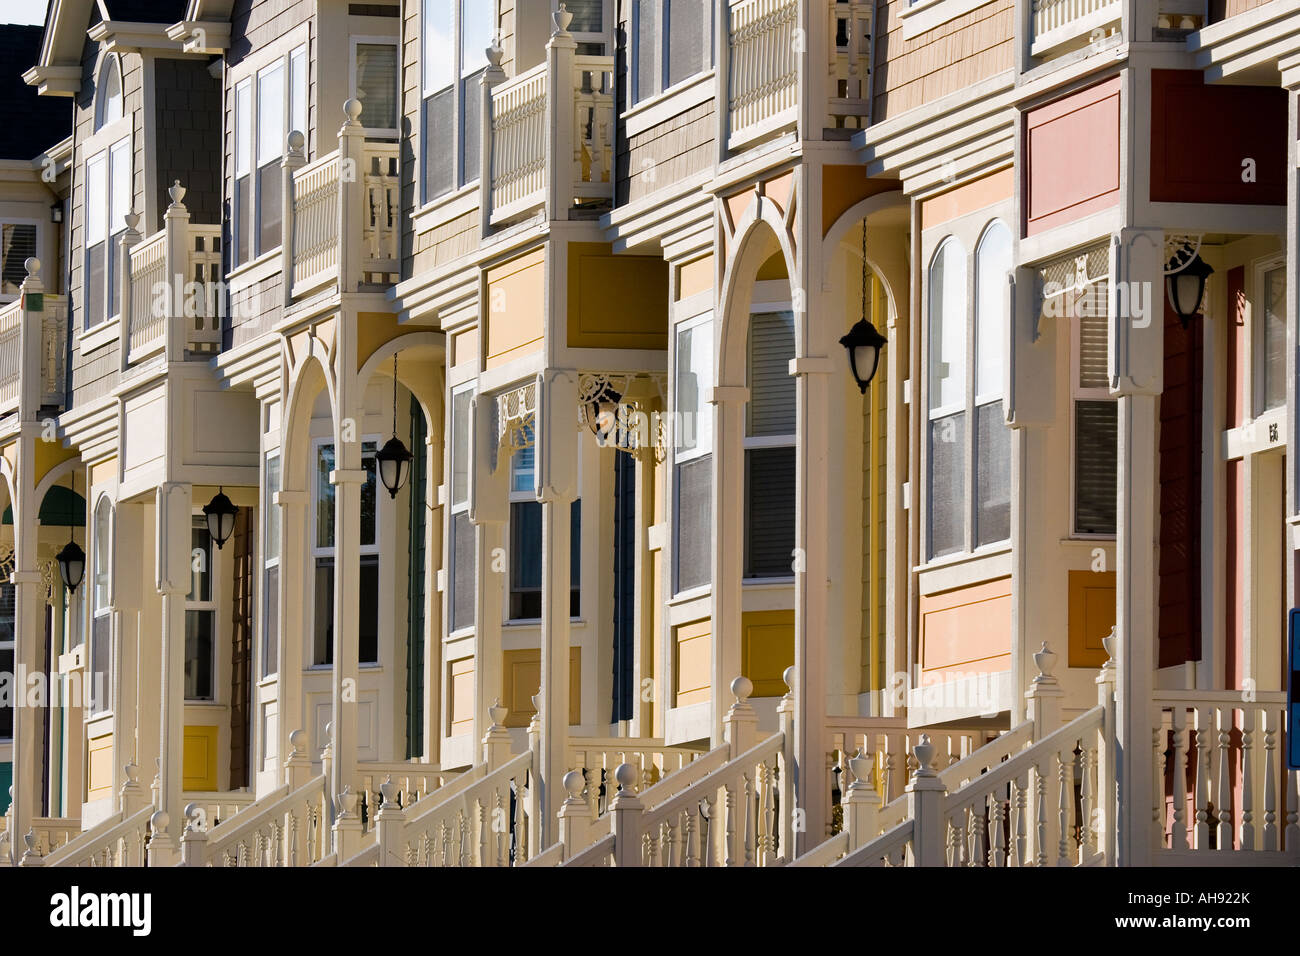 Row houses in the Victorian architecture style with bay windows railings and arch entrances in Santa Cruz California - Stock Image